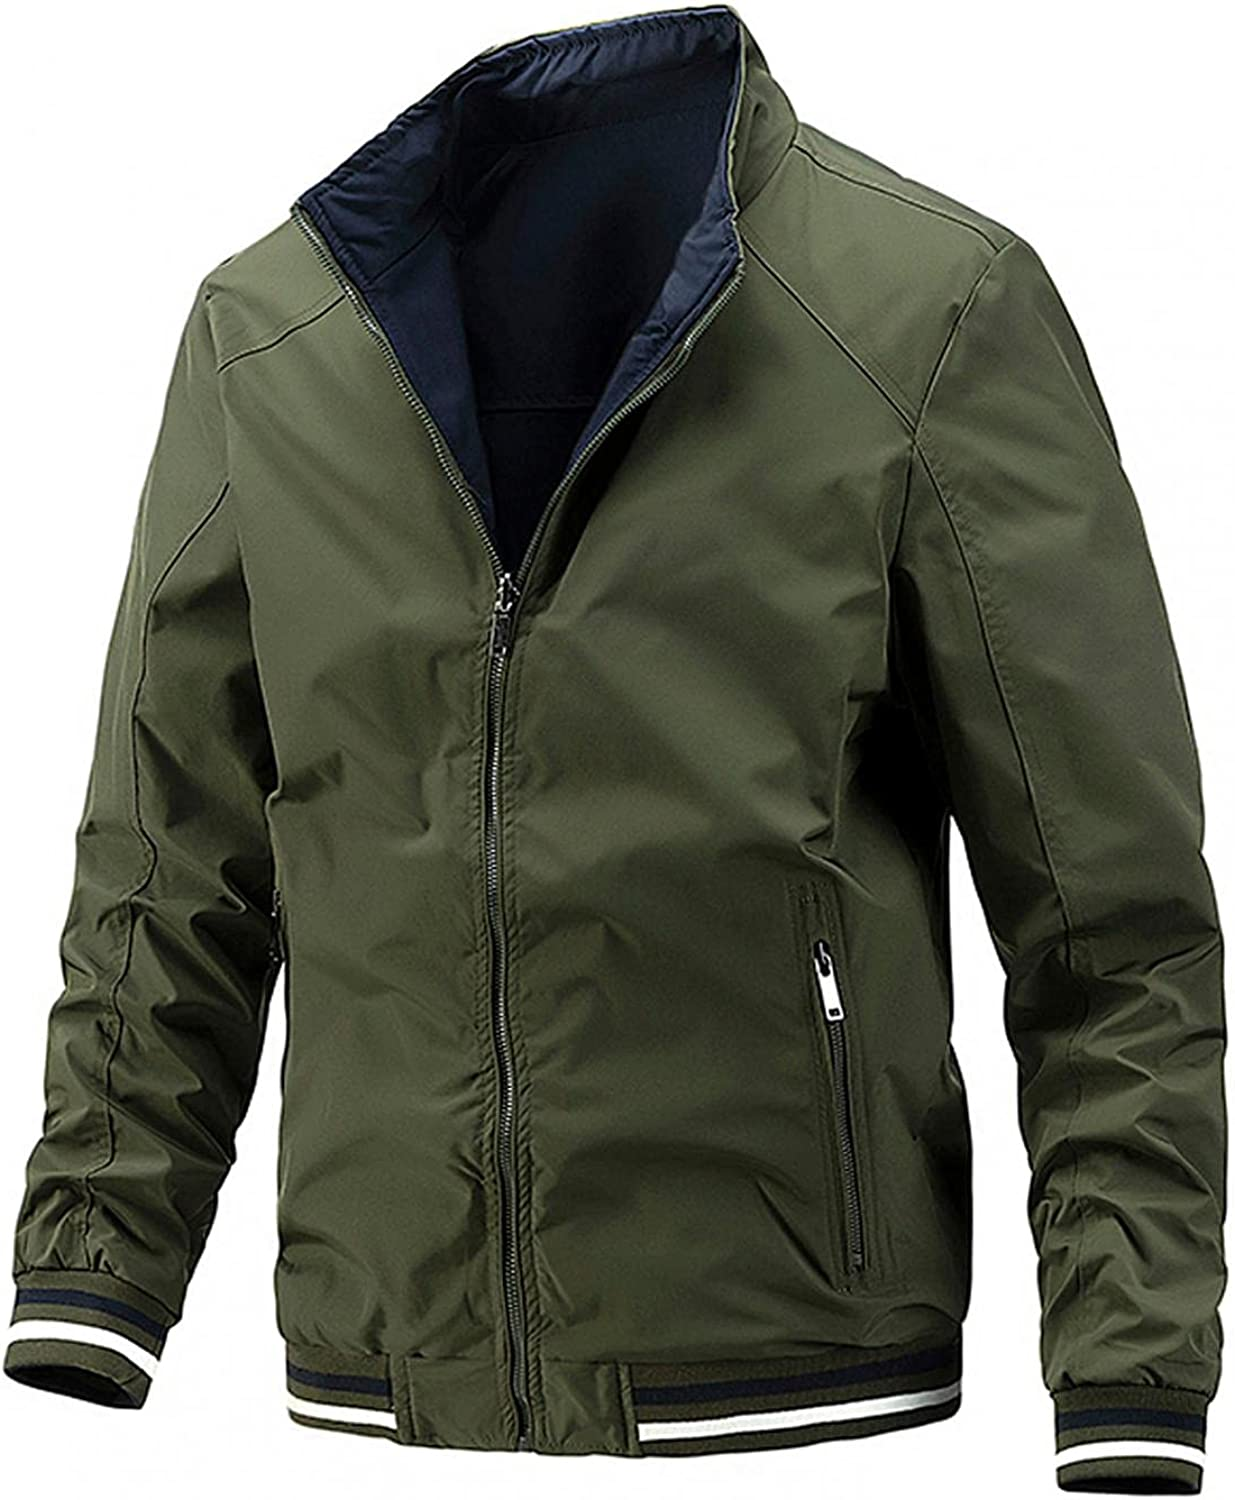 AKIMPE Autumn&Winter Wear On Both Sides Long Sleeve Coats for Men,Solid Casual Comfy Zipper Jacket Tops with pocket